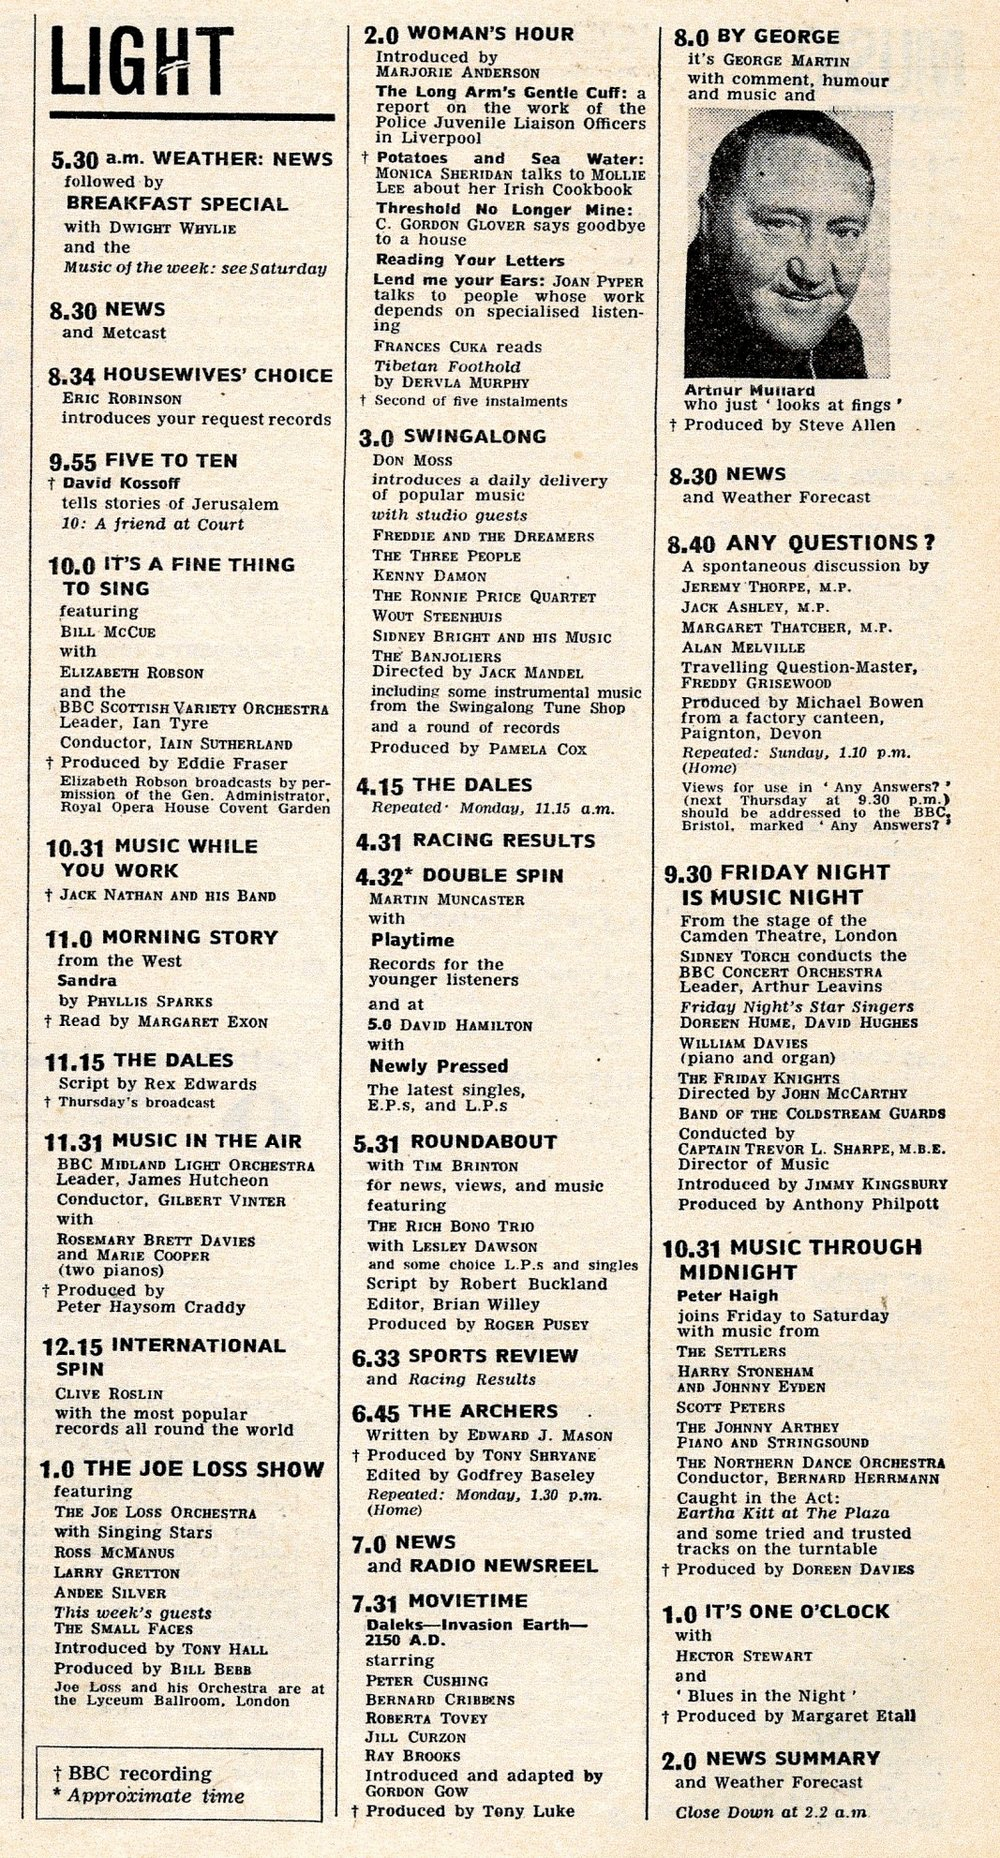 Listing for Movietime: Daleks-Invasion Earth-2150 AD on the BBC Light Programme, Radio Times, 12-18 November 1966